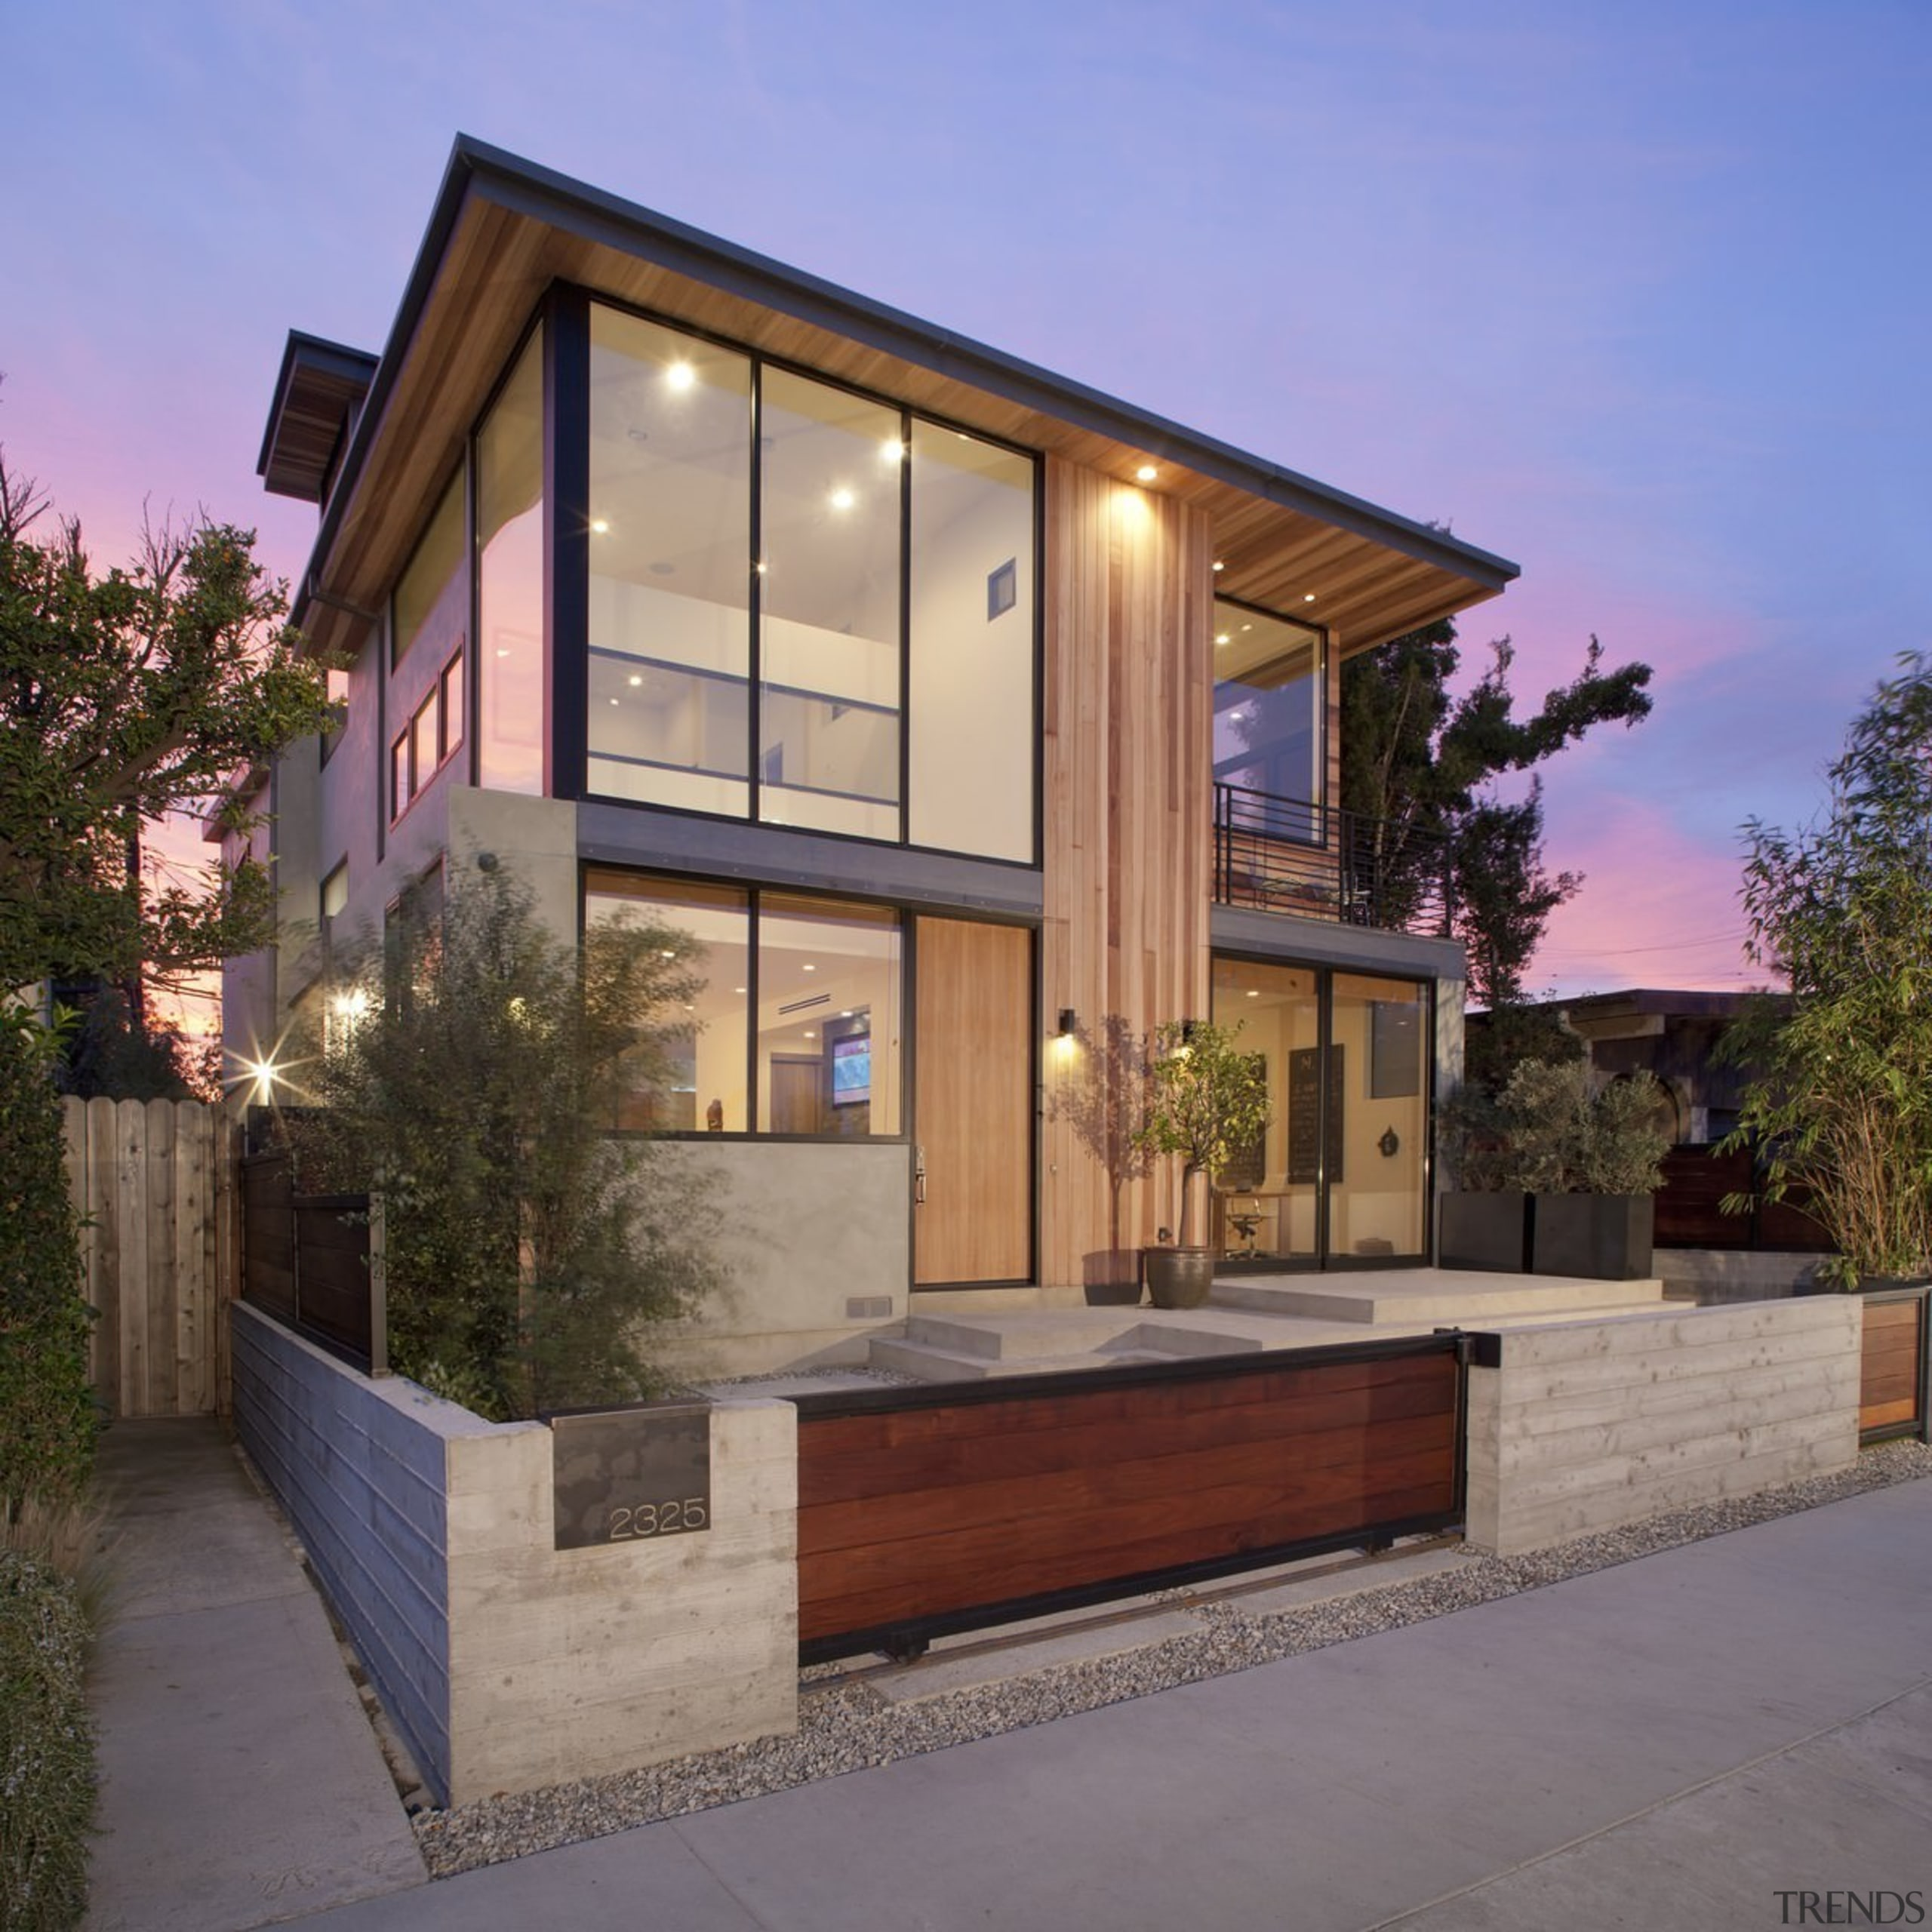 Outside, the home is inviting, with substantial windows architecture, elevation, estate, facade, home, house, property, real estate, residential area, siding, window, gray